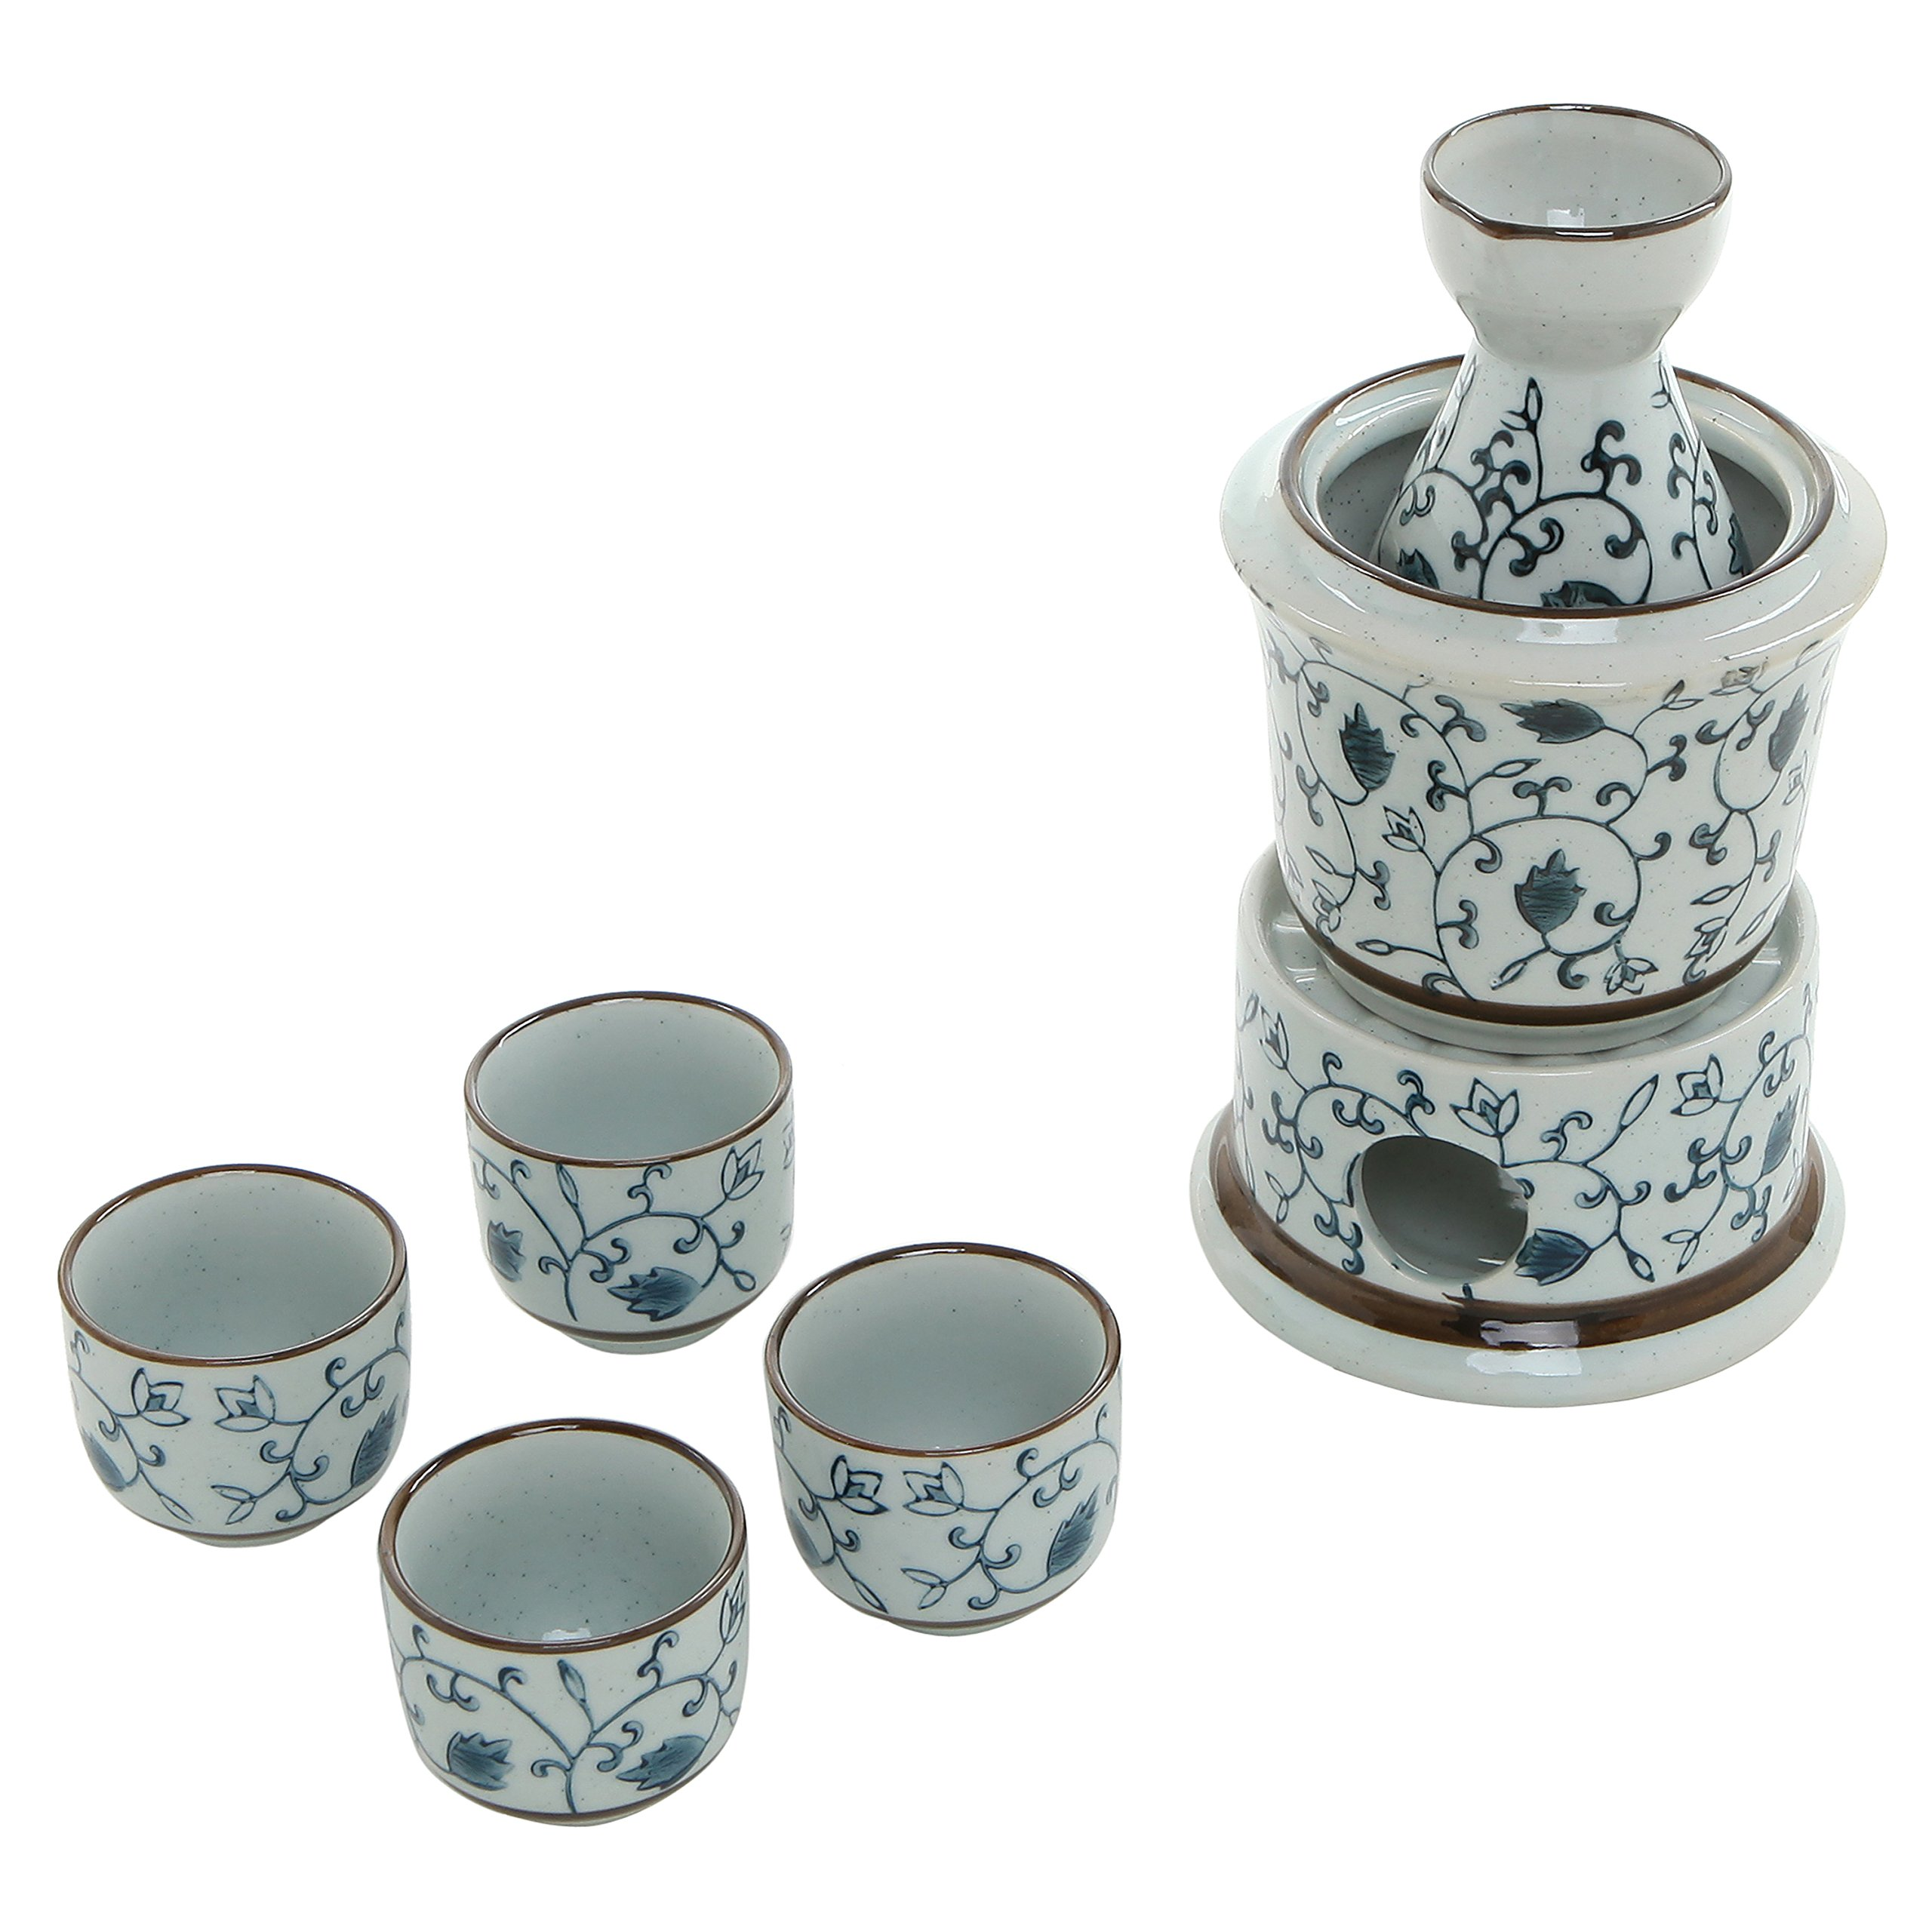 7-Piece Blue Floral Design White Ceramic Japanese Hot Sake Set with Warmer, 4 Cups, Carafe & Heating Pot by MyGift